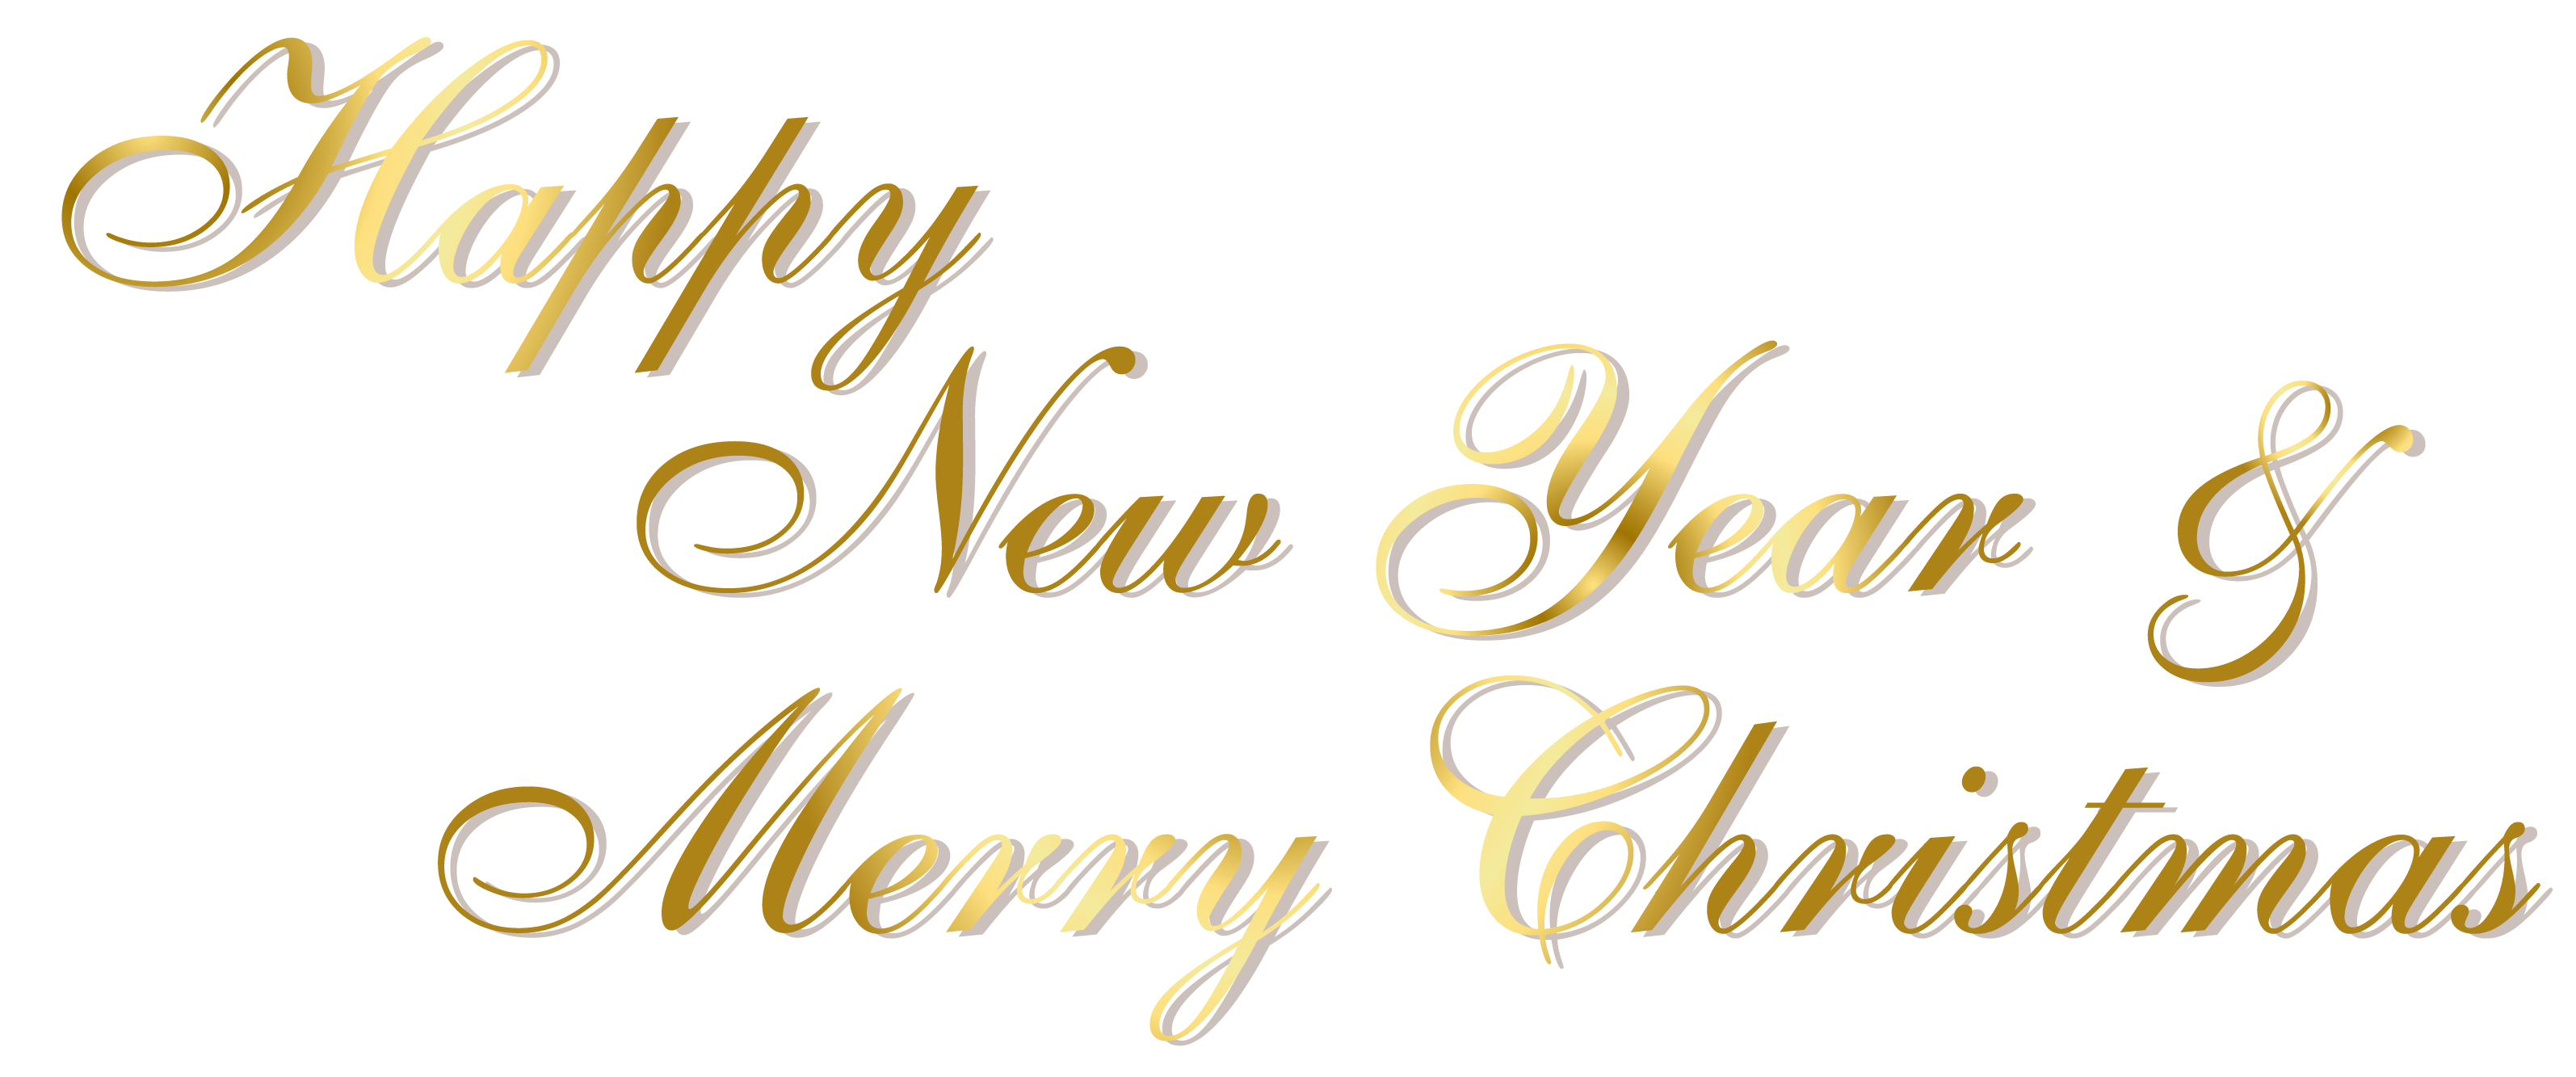 Free clipart merry christmas text clip art free stock Gold Happy New Year and Merry Christmas PNG Text | Moreheads ... clip art free stock